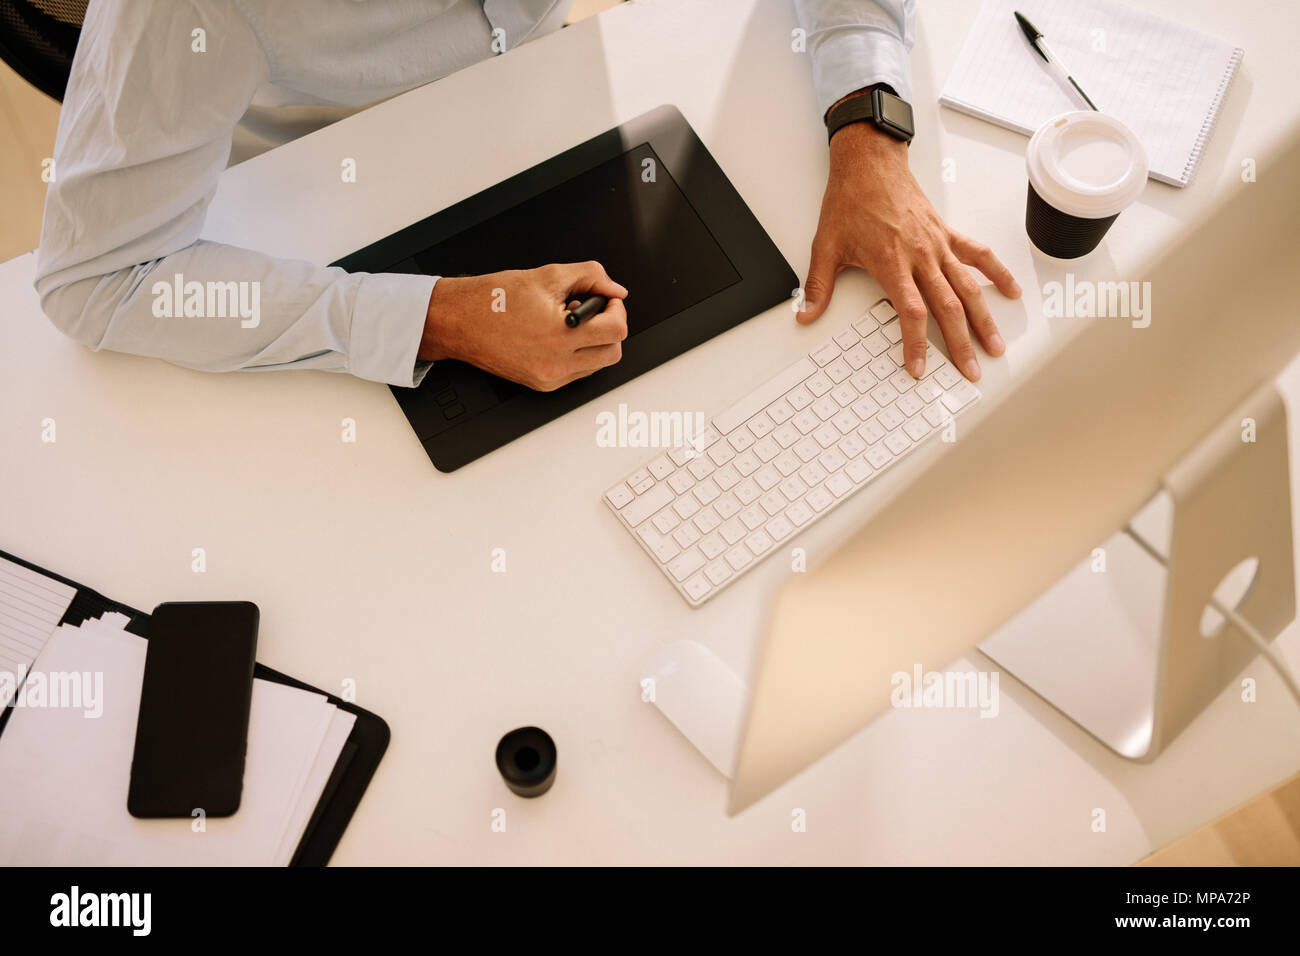 Top view of a man writing on digitizer with a computer in front. Man working on computer with a coffee cup on the table. - Stock Image